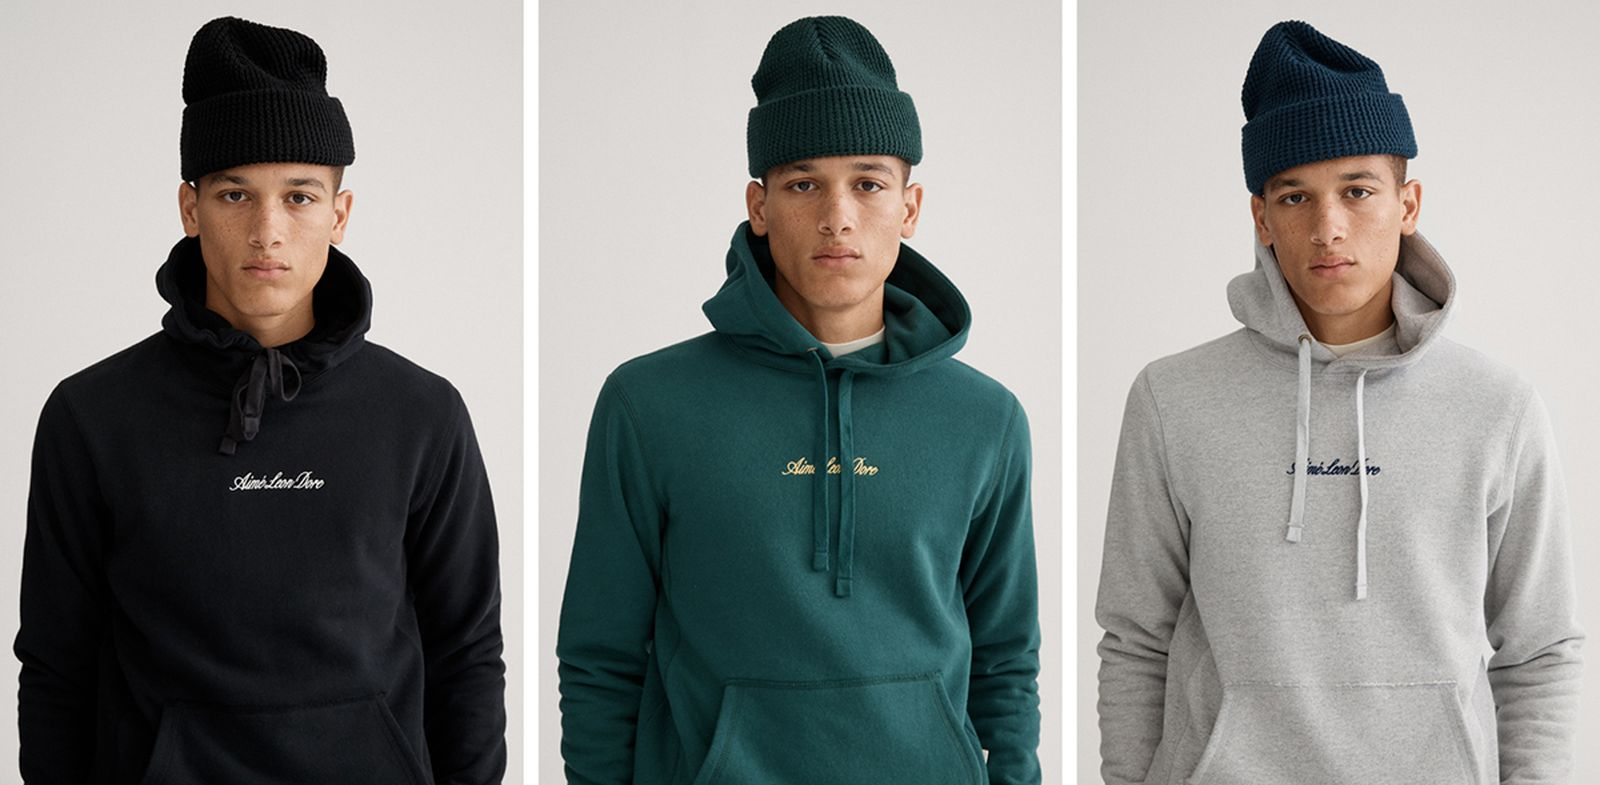 Aimé Leon Dore FW19 Uniform Program hoodies beanies